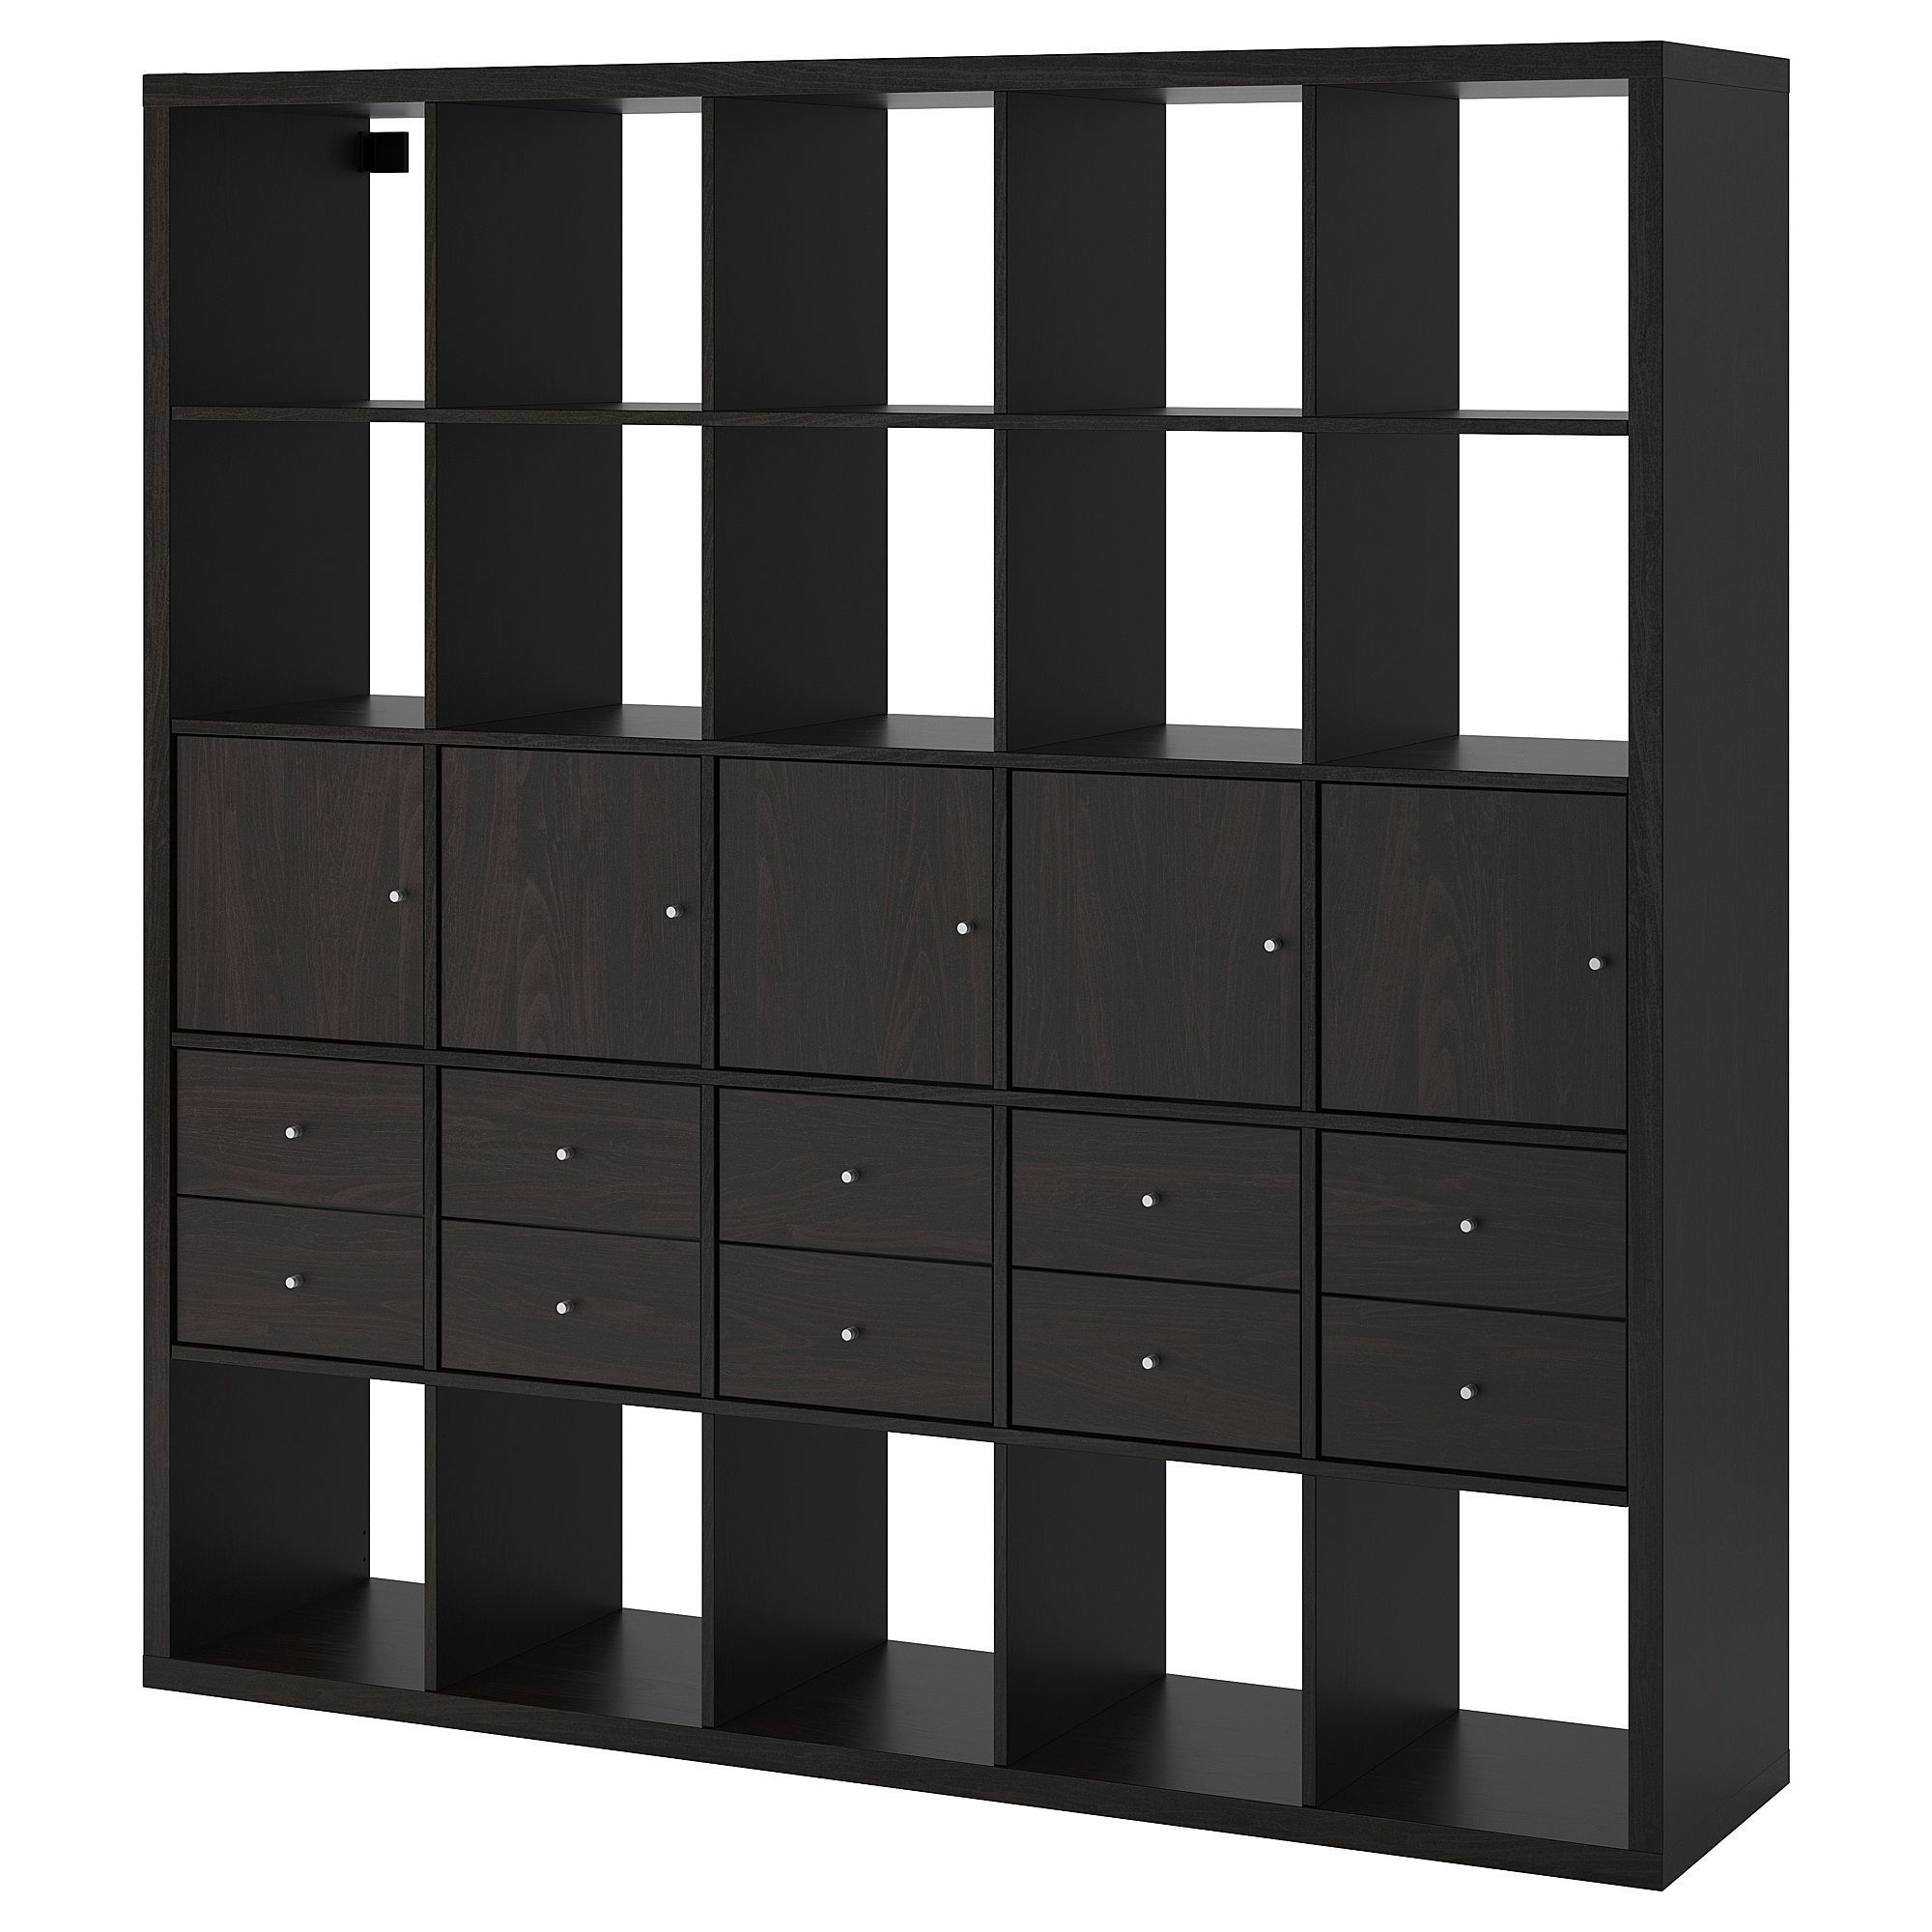 Ikea Regal Mit 10 Einsatzen Einsaumltzen Ikea Mit Regal Schwarzbraun In 2020 Ikea Kallax Shelf Unit Kallax Shelf Unit Ikea Kallax Shelf